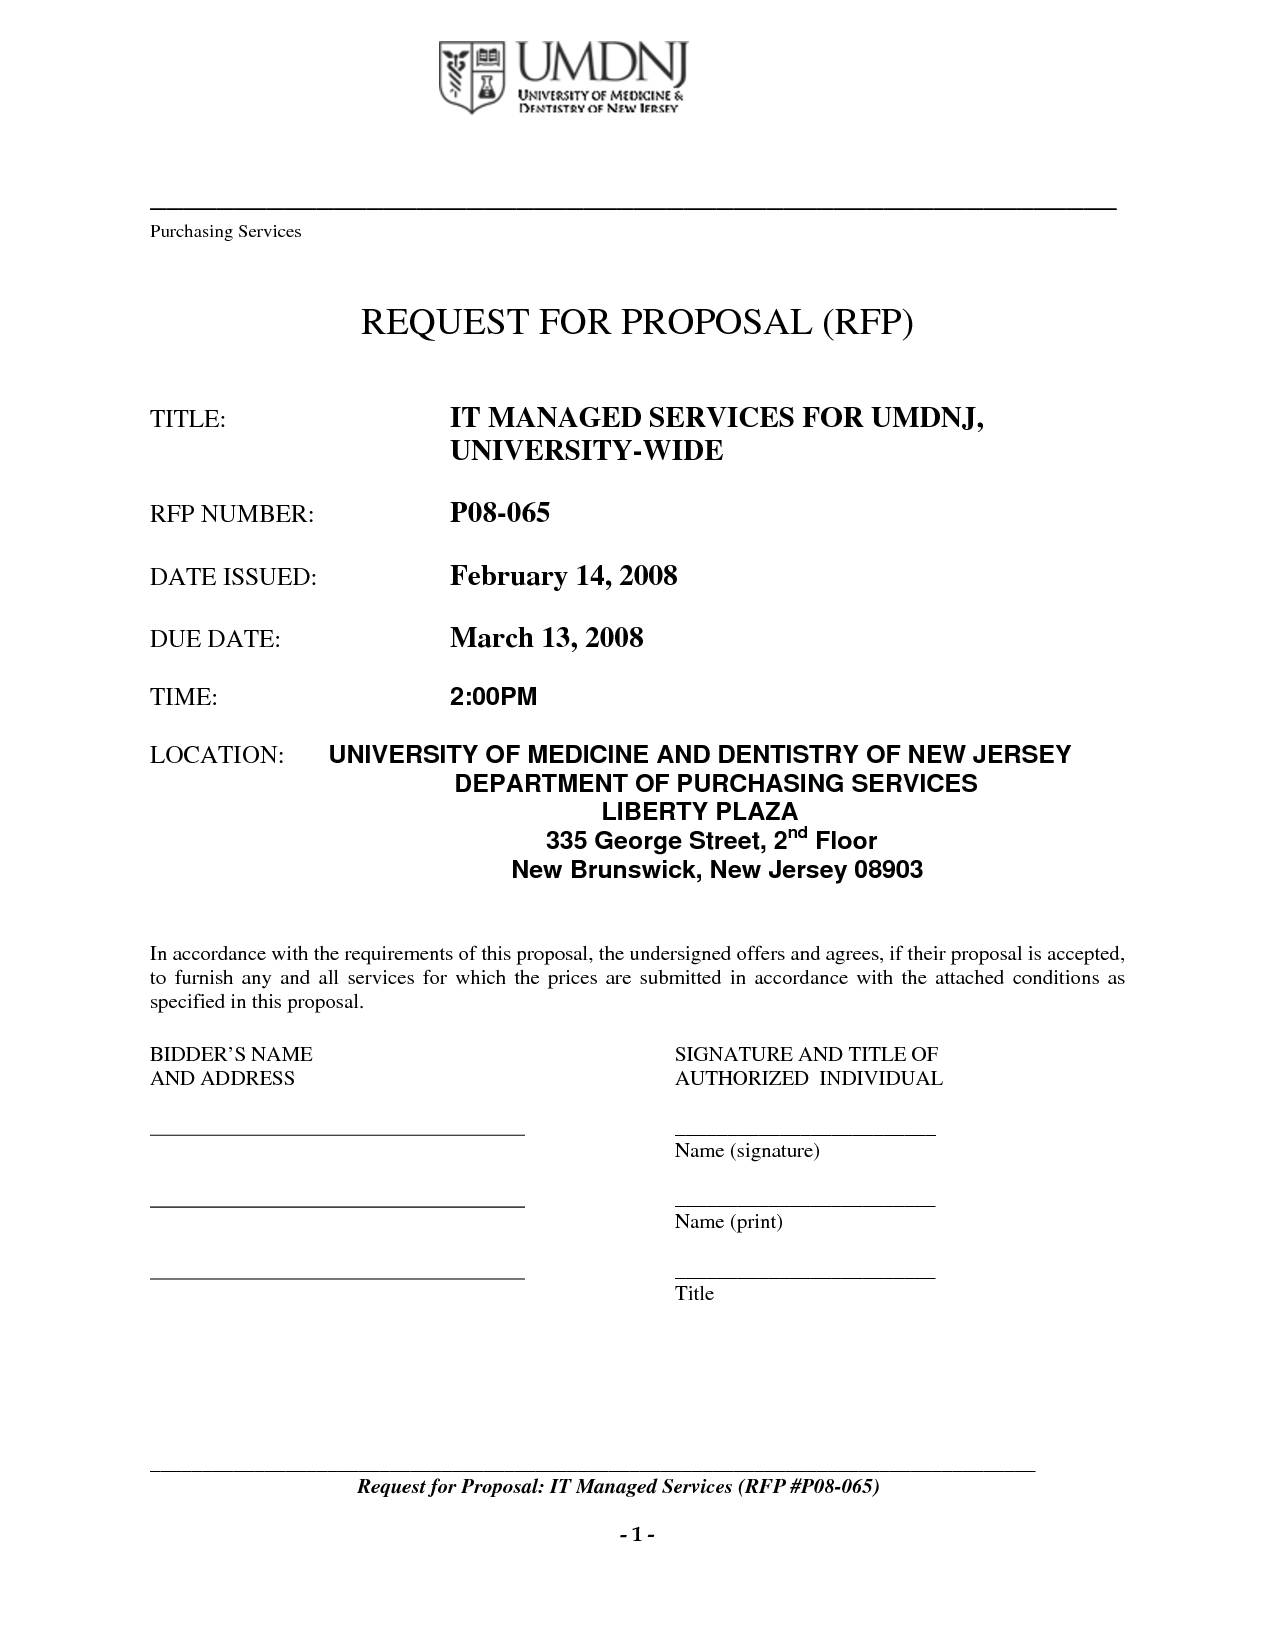 Managed Print Services Proposal Template